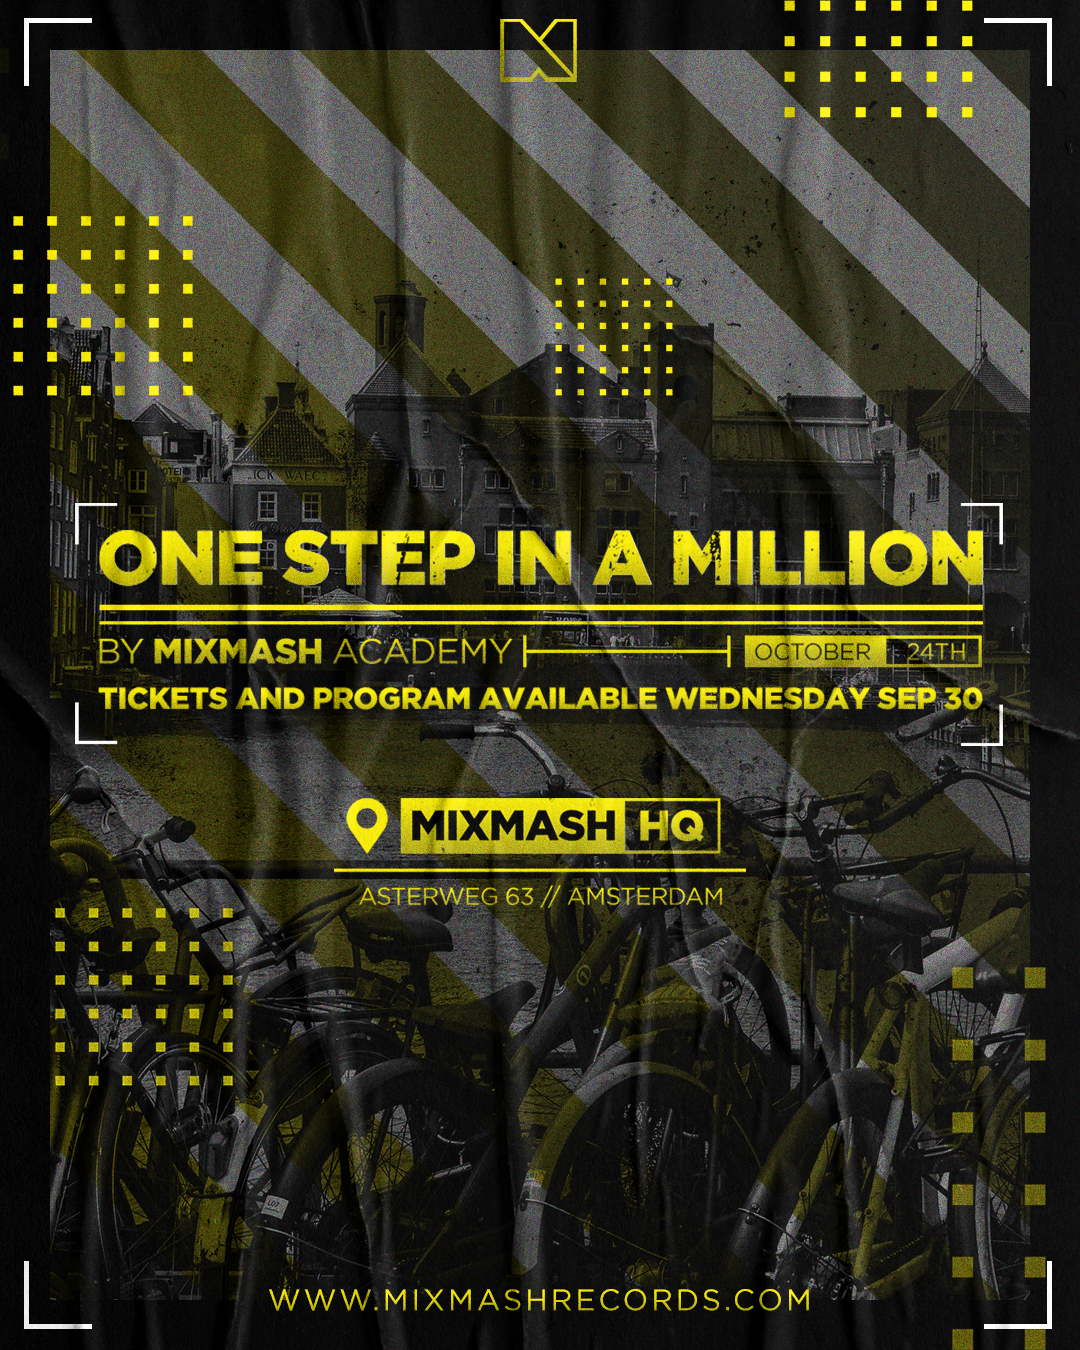 ONE STEP IN A MILLION BY MIXMASH ACADEMY